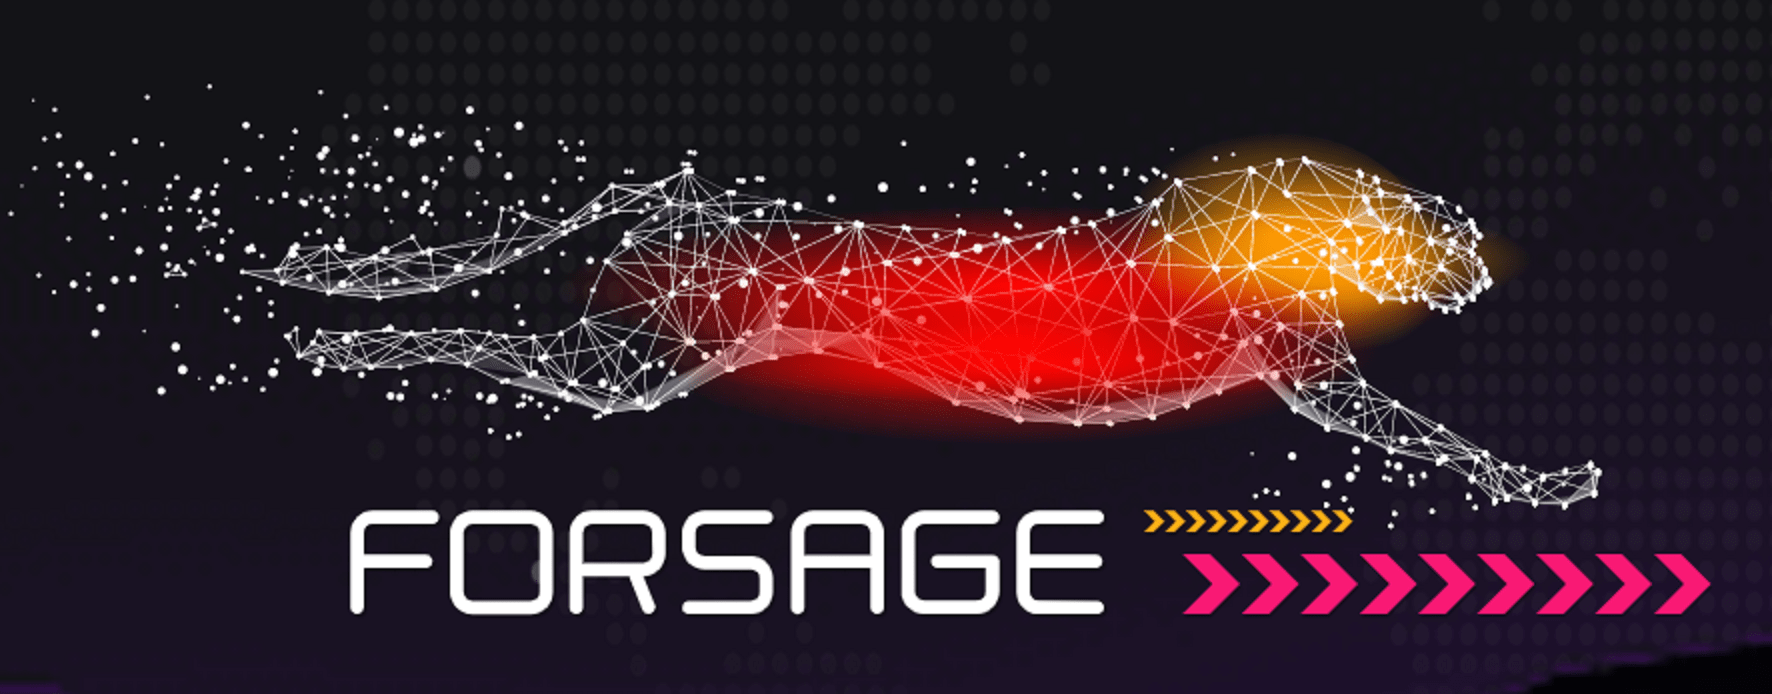 forsage crypto investment